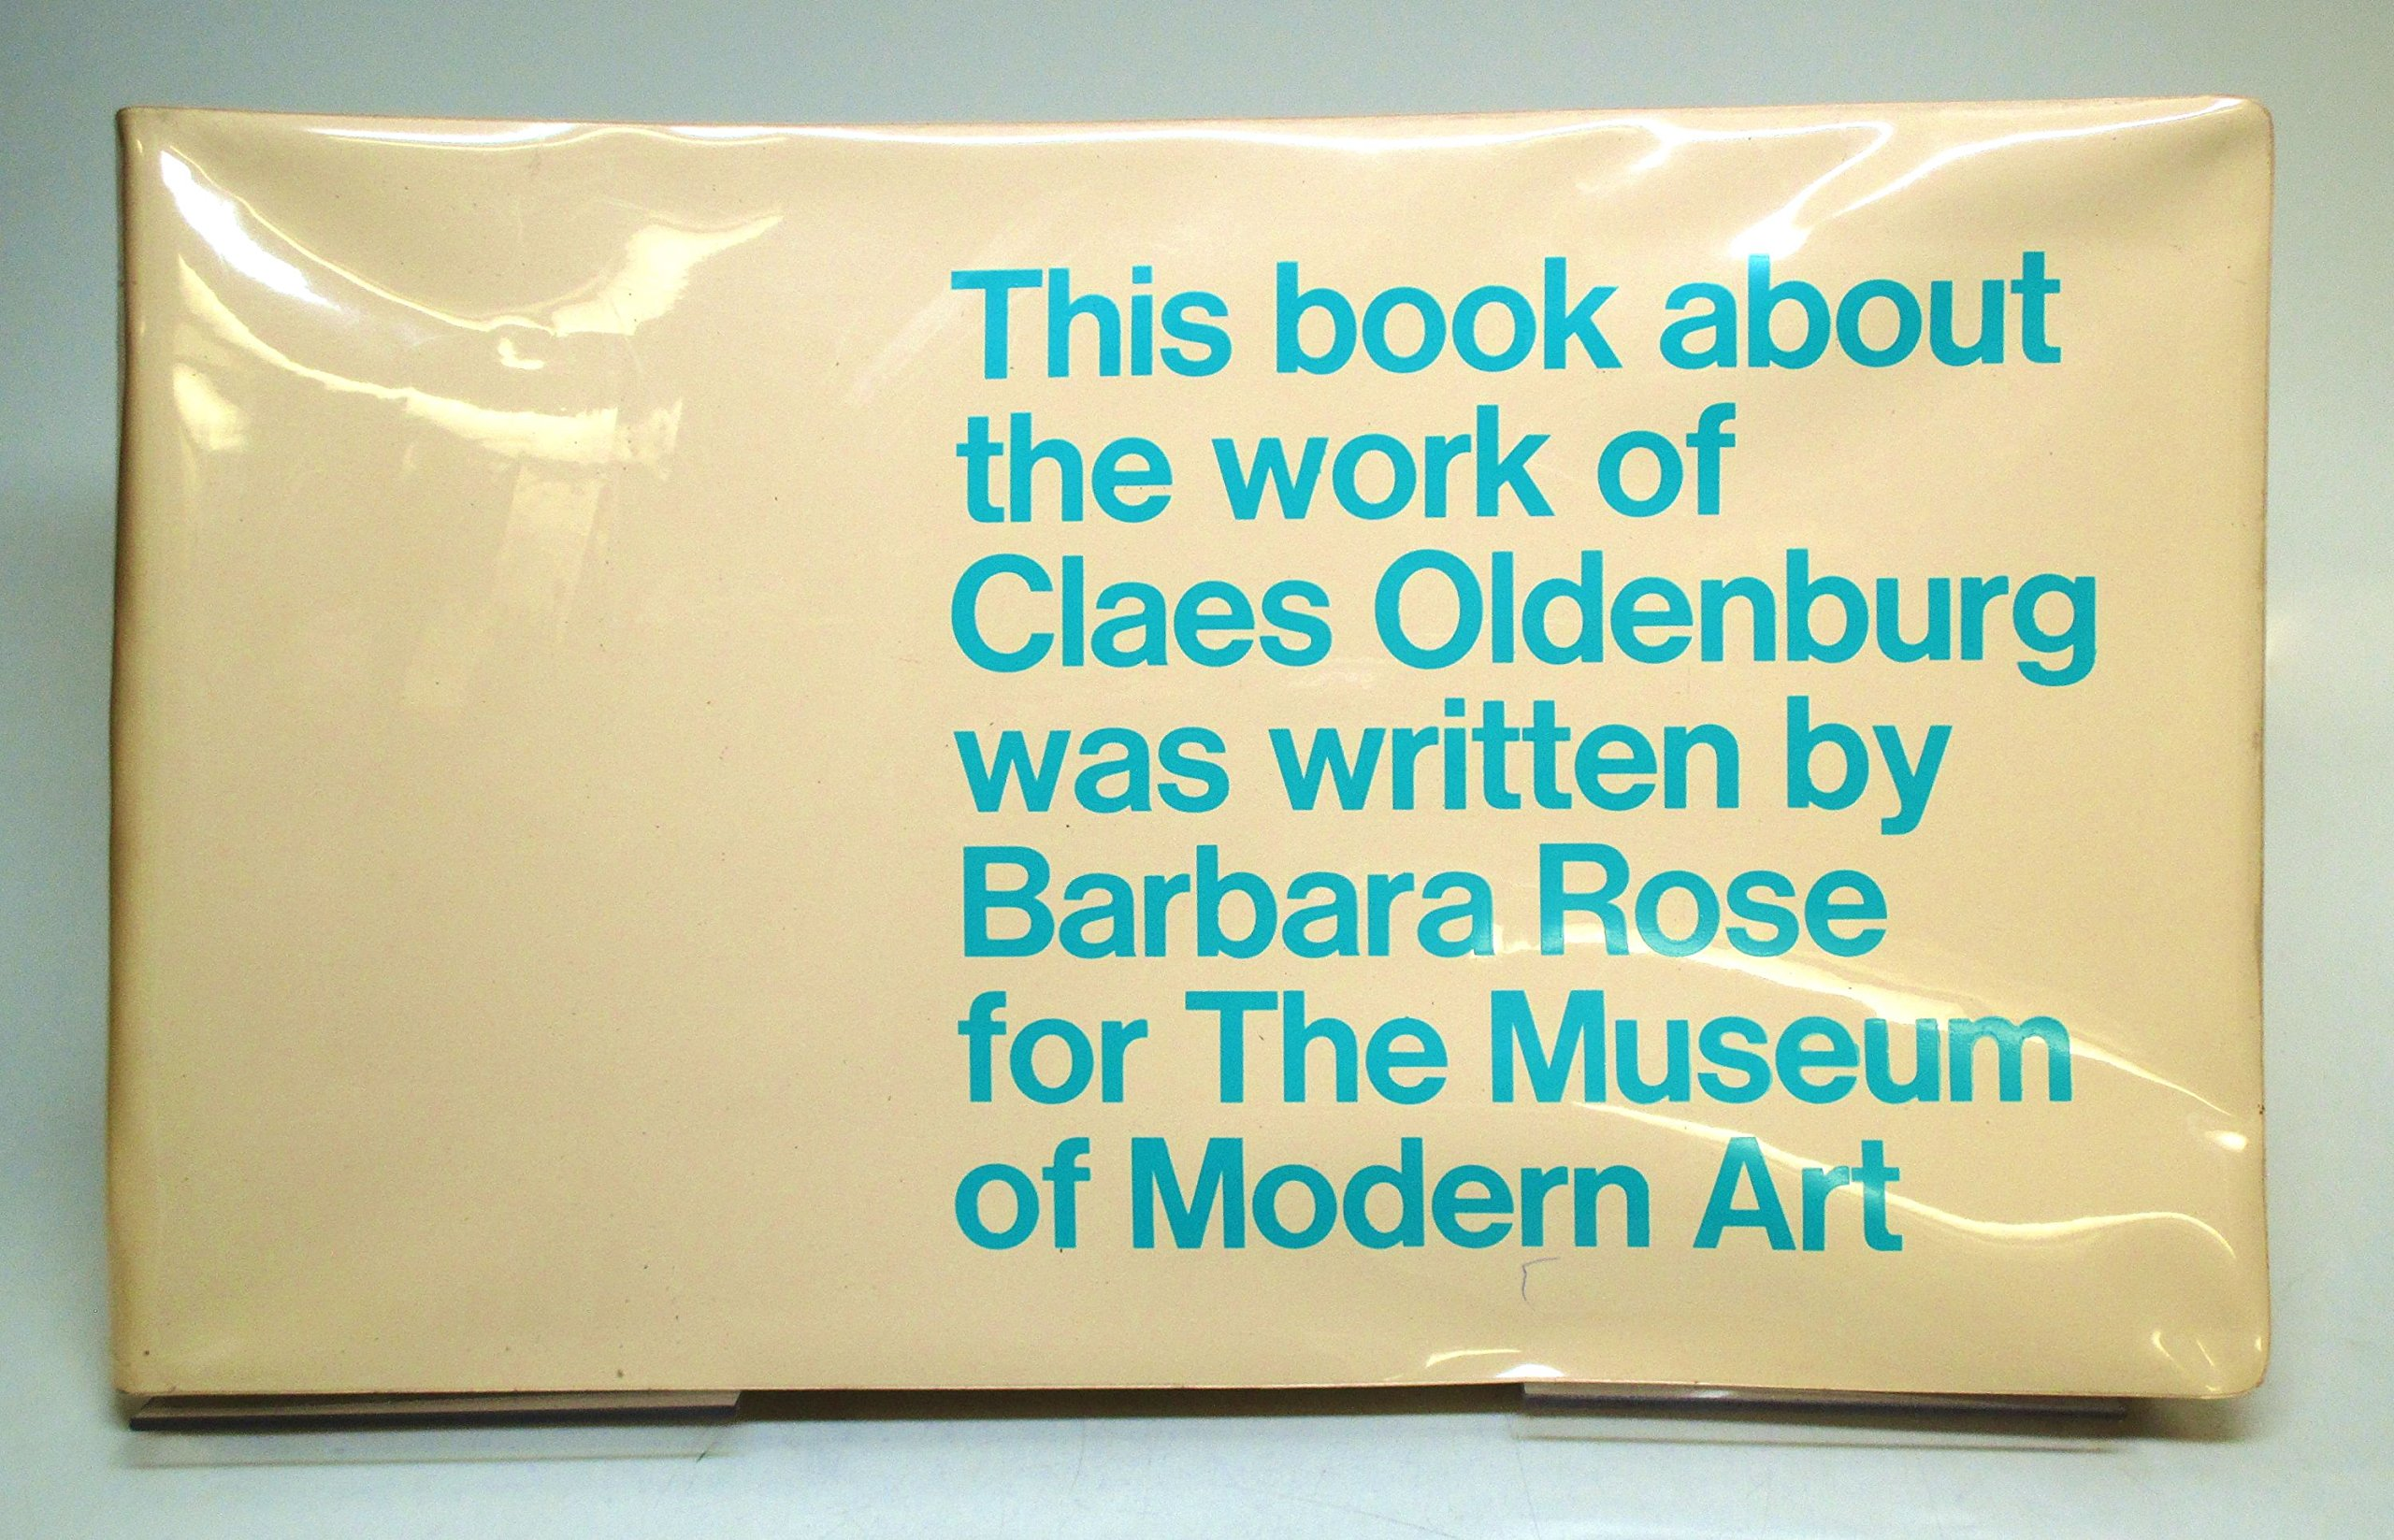 claes oldenburg works in edition